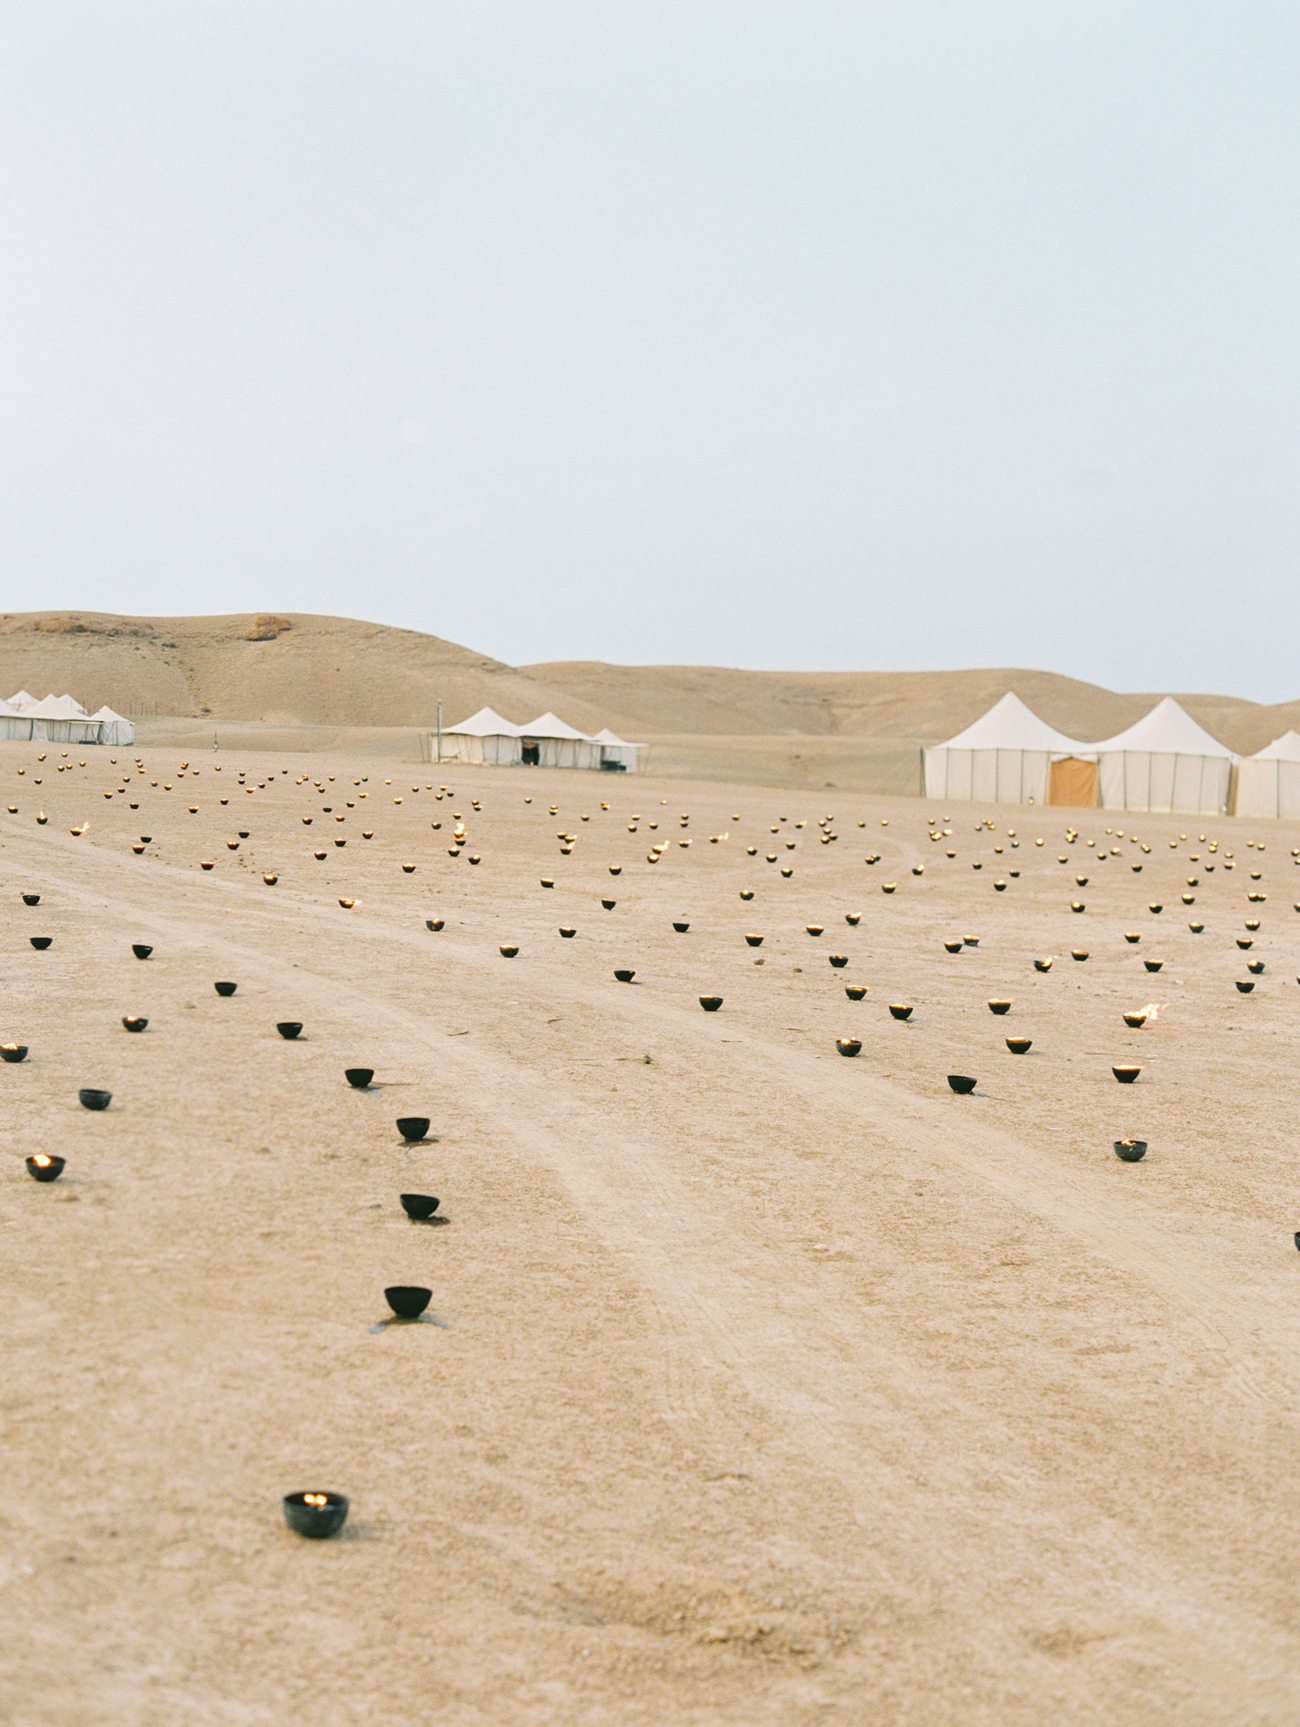 desert wedding campground area with moroccan lanterns and white tents